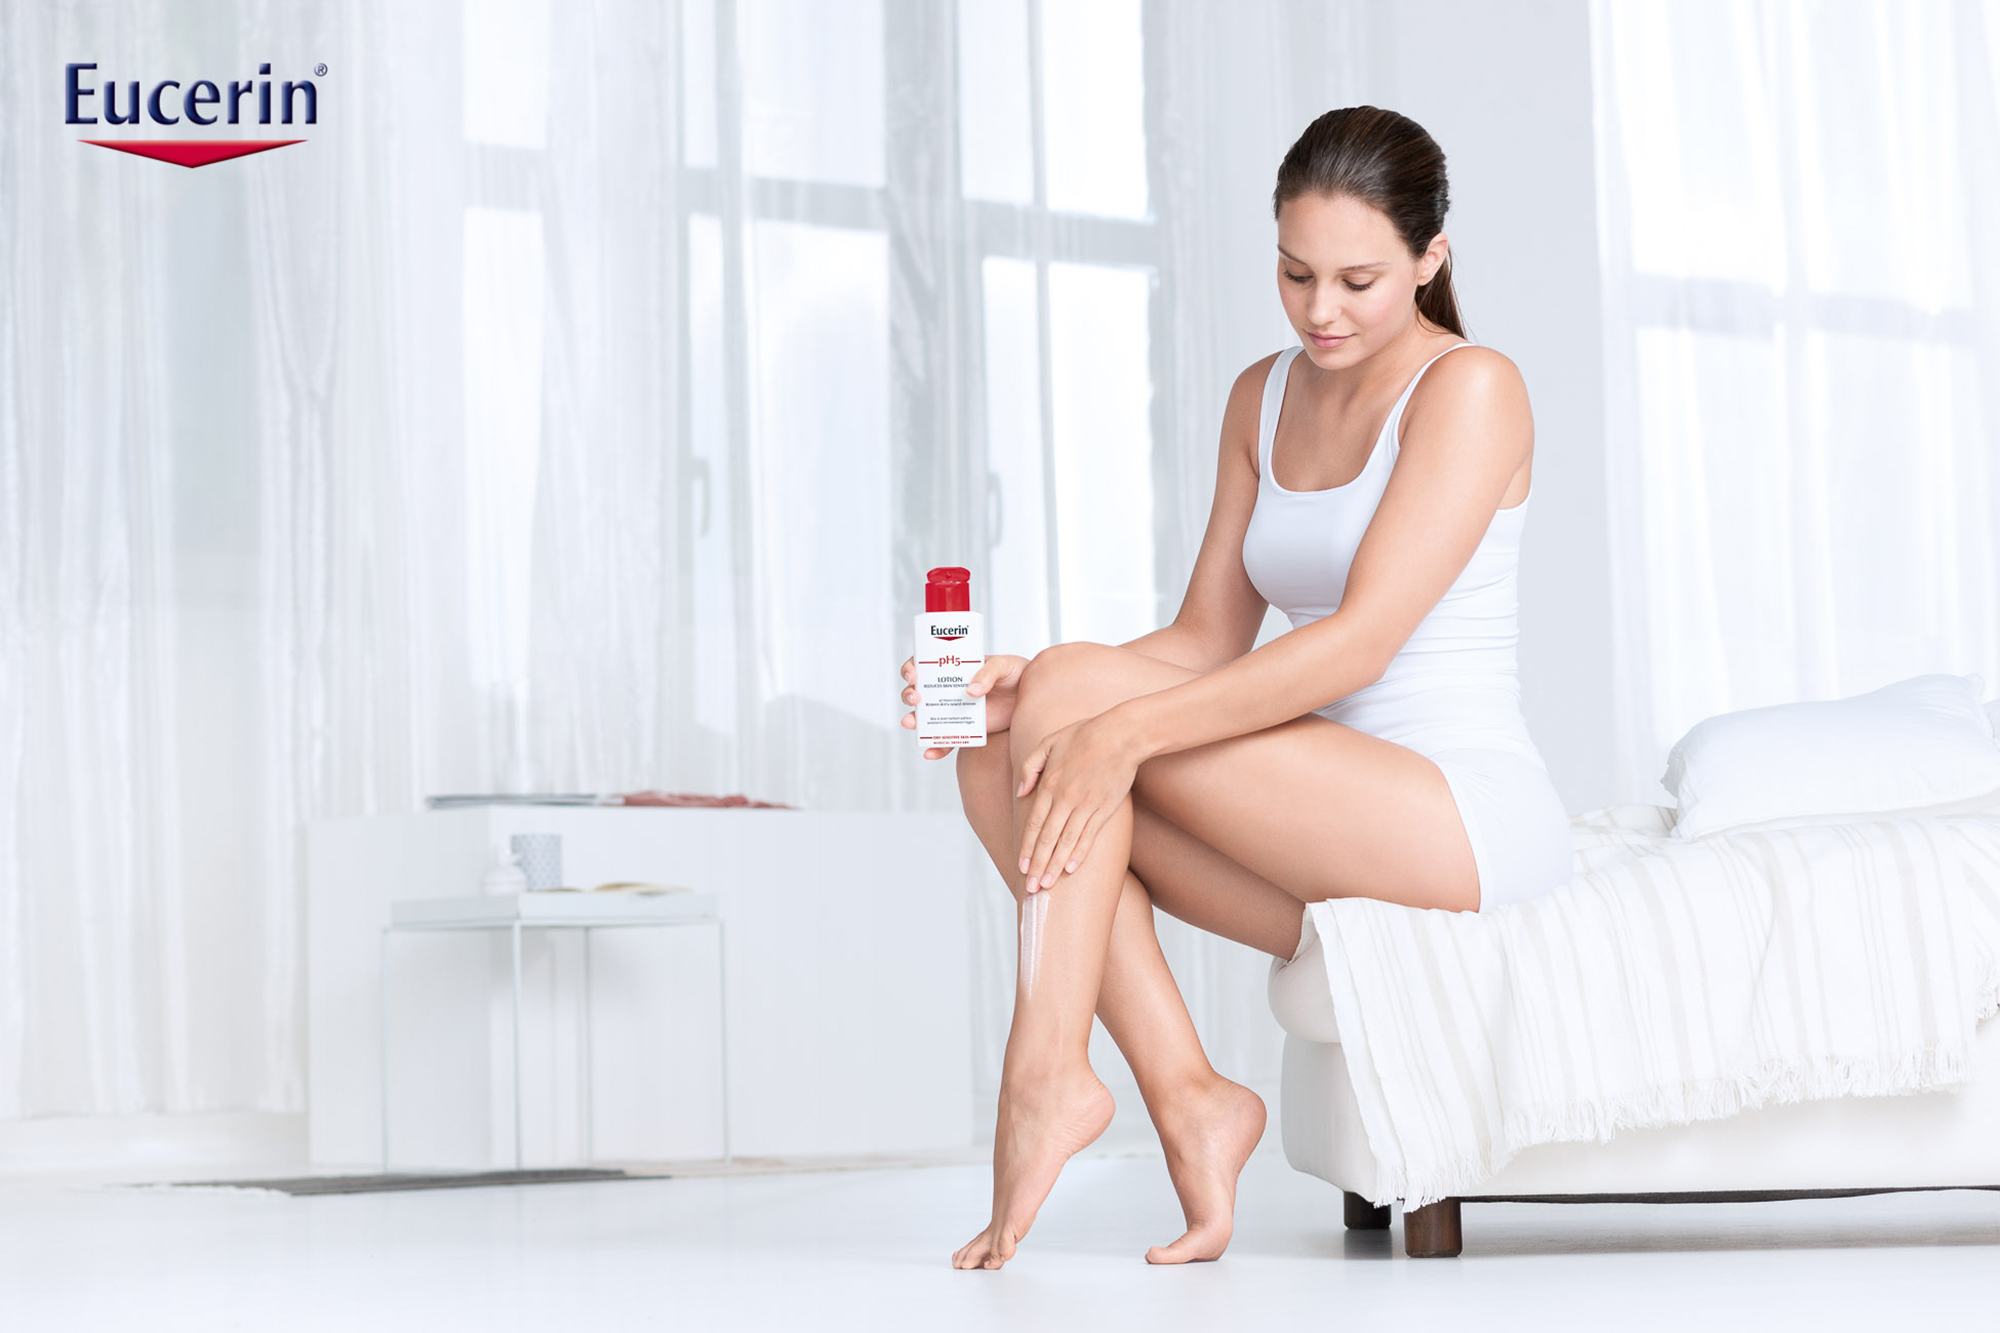 white room eucerin female model shirt dark hair creme legs